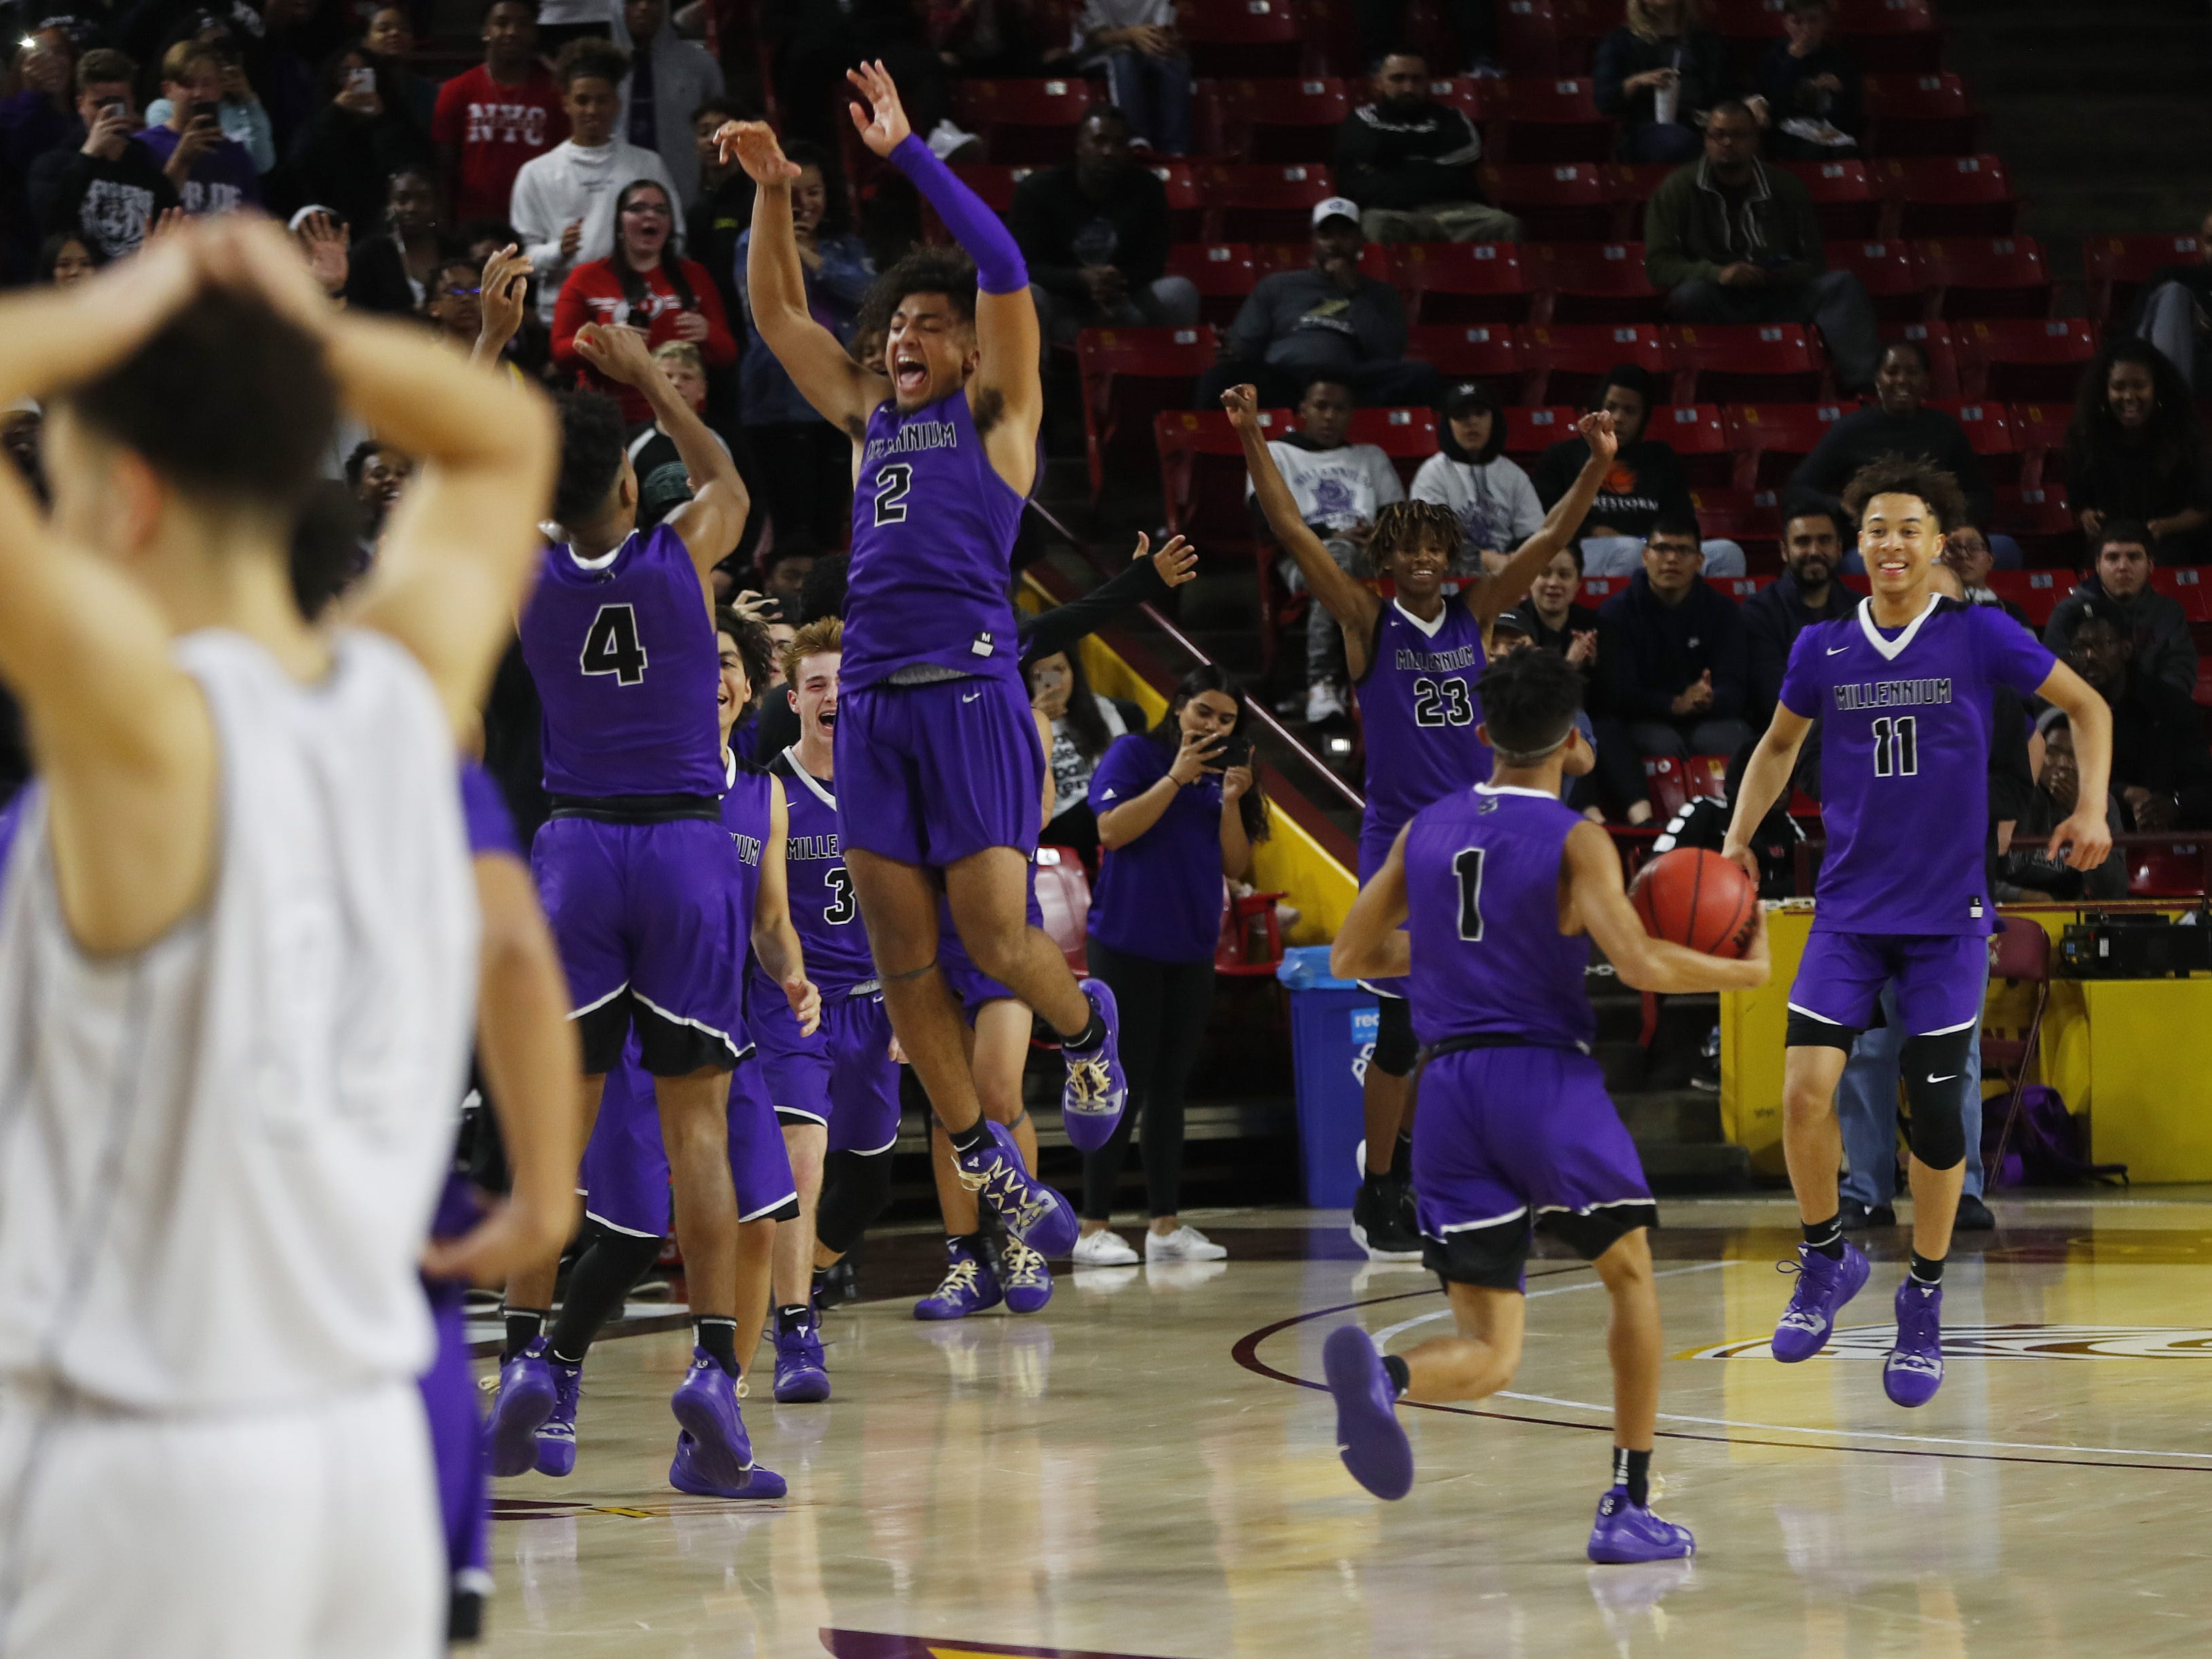 Millennium's Jalan Early (2) celebrates with his teammates as Apollo's Demetrius Edwards (34) puts his hands on his head following a Millennium win over favored Apollo during the 5A boys basketball state semifinal game at Wells Fargo Arena in Tempe, Ariz. on February 18, 2019.